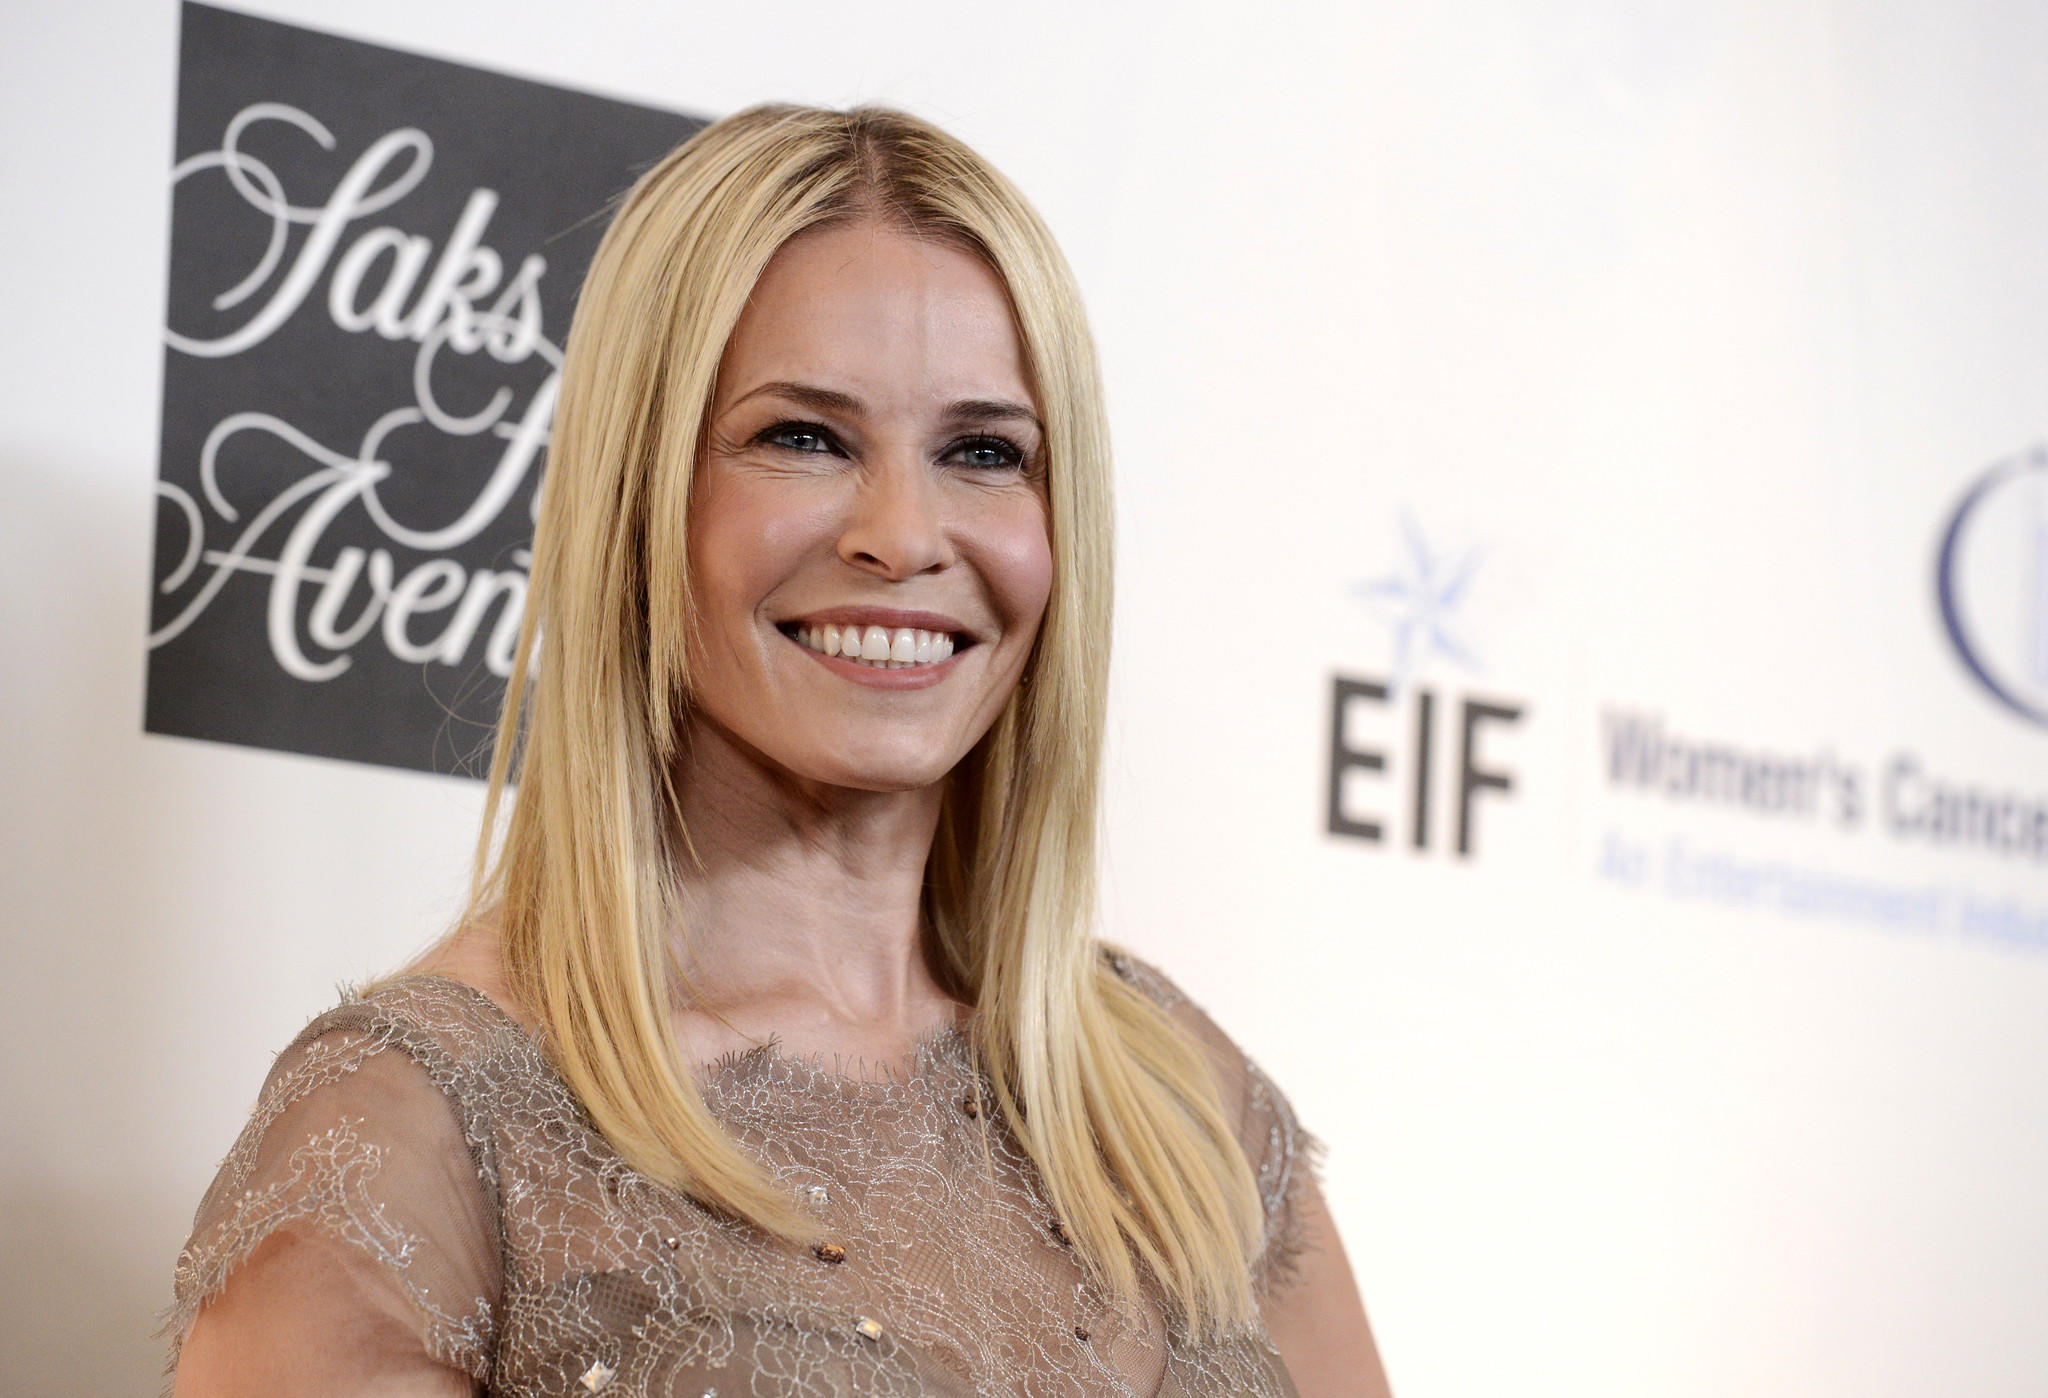 Chelsea Handler is fielding offers from other networks and platforms for her show, according to her manager.